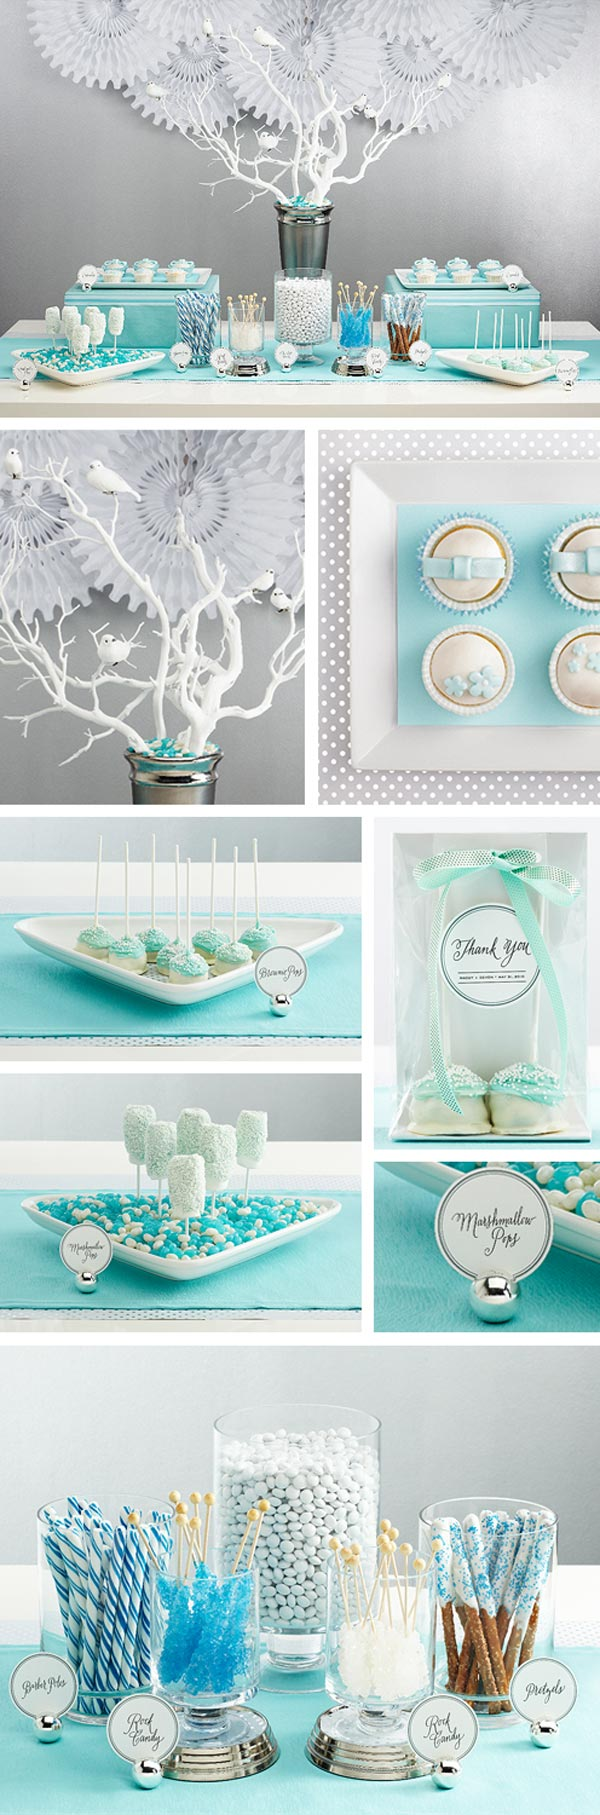 Baby shower decor ideas arhitektura for Baby shower decoration ideas